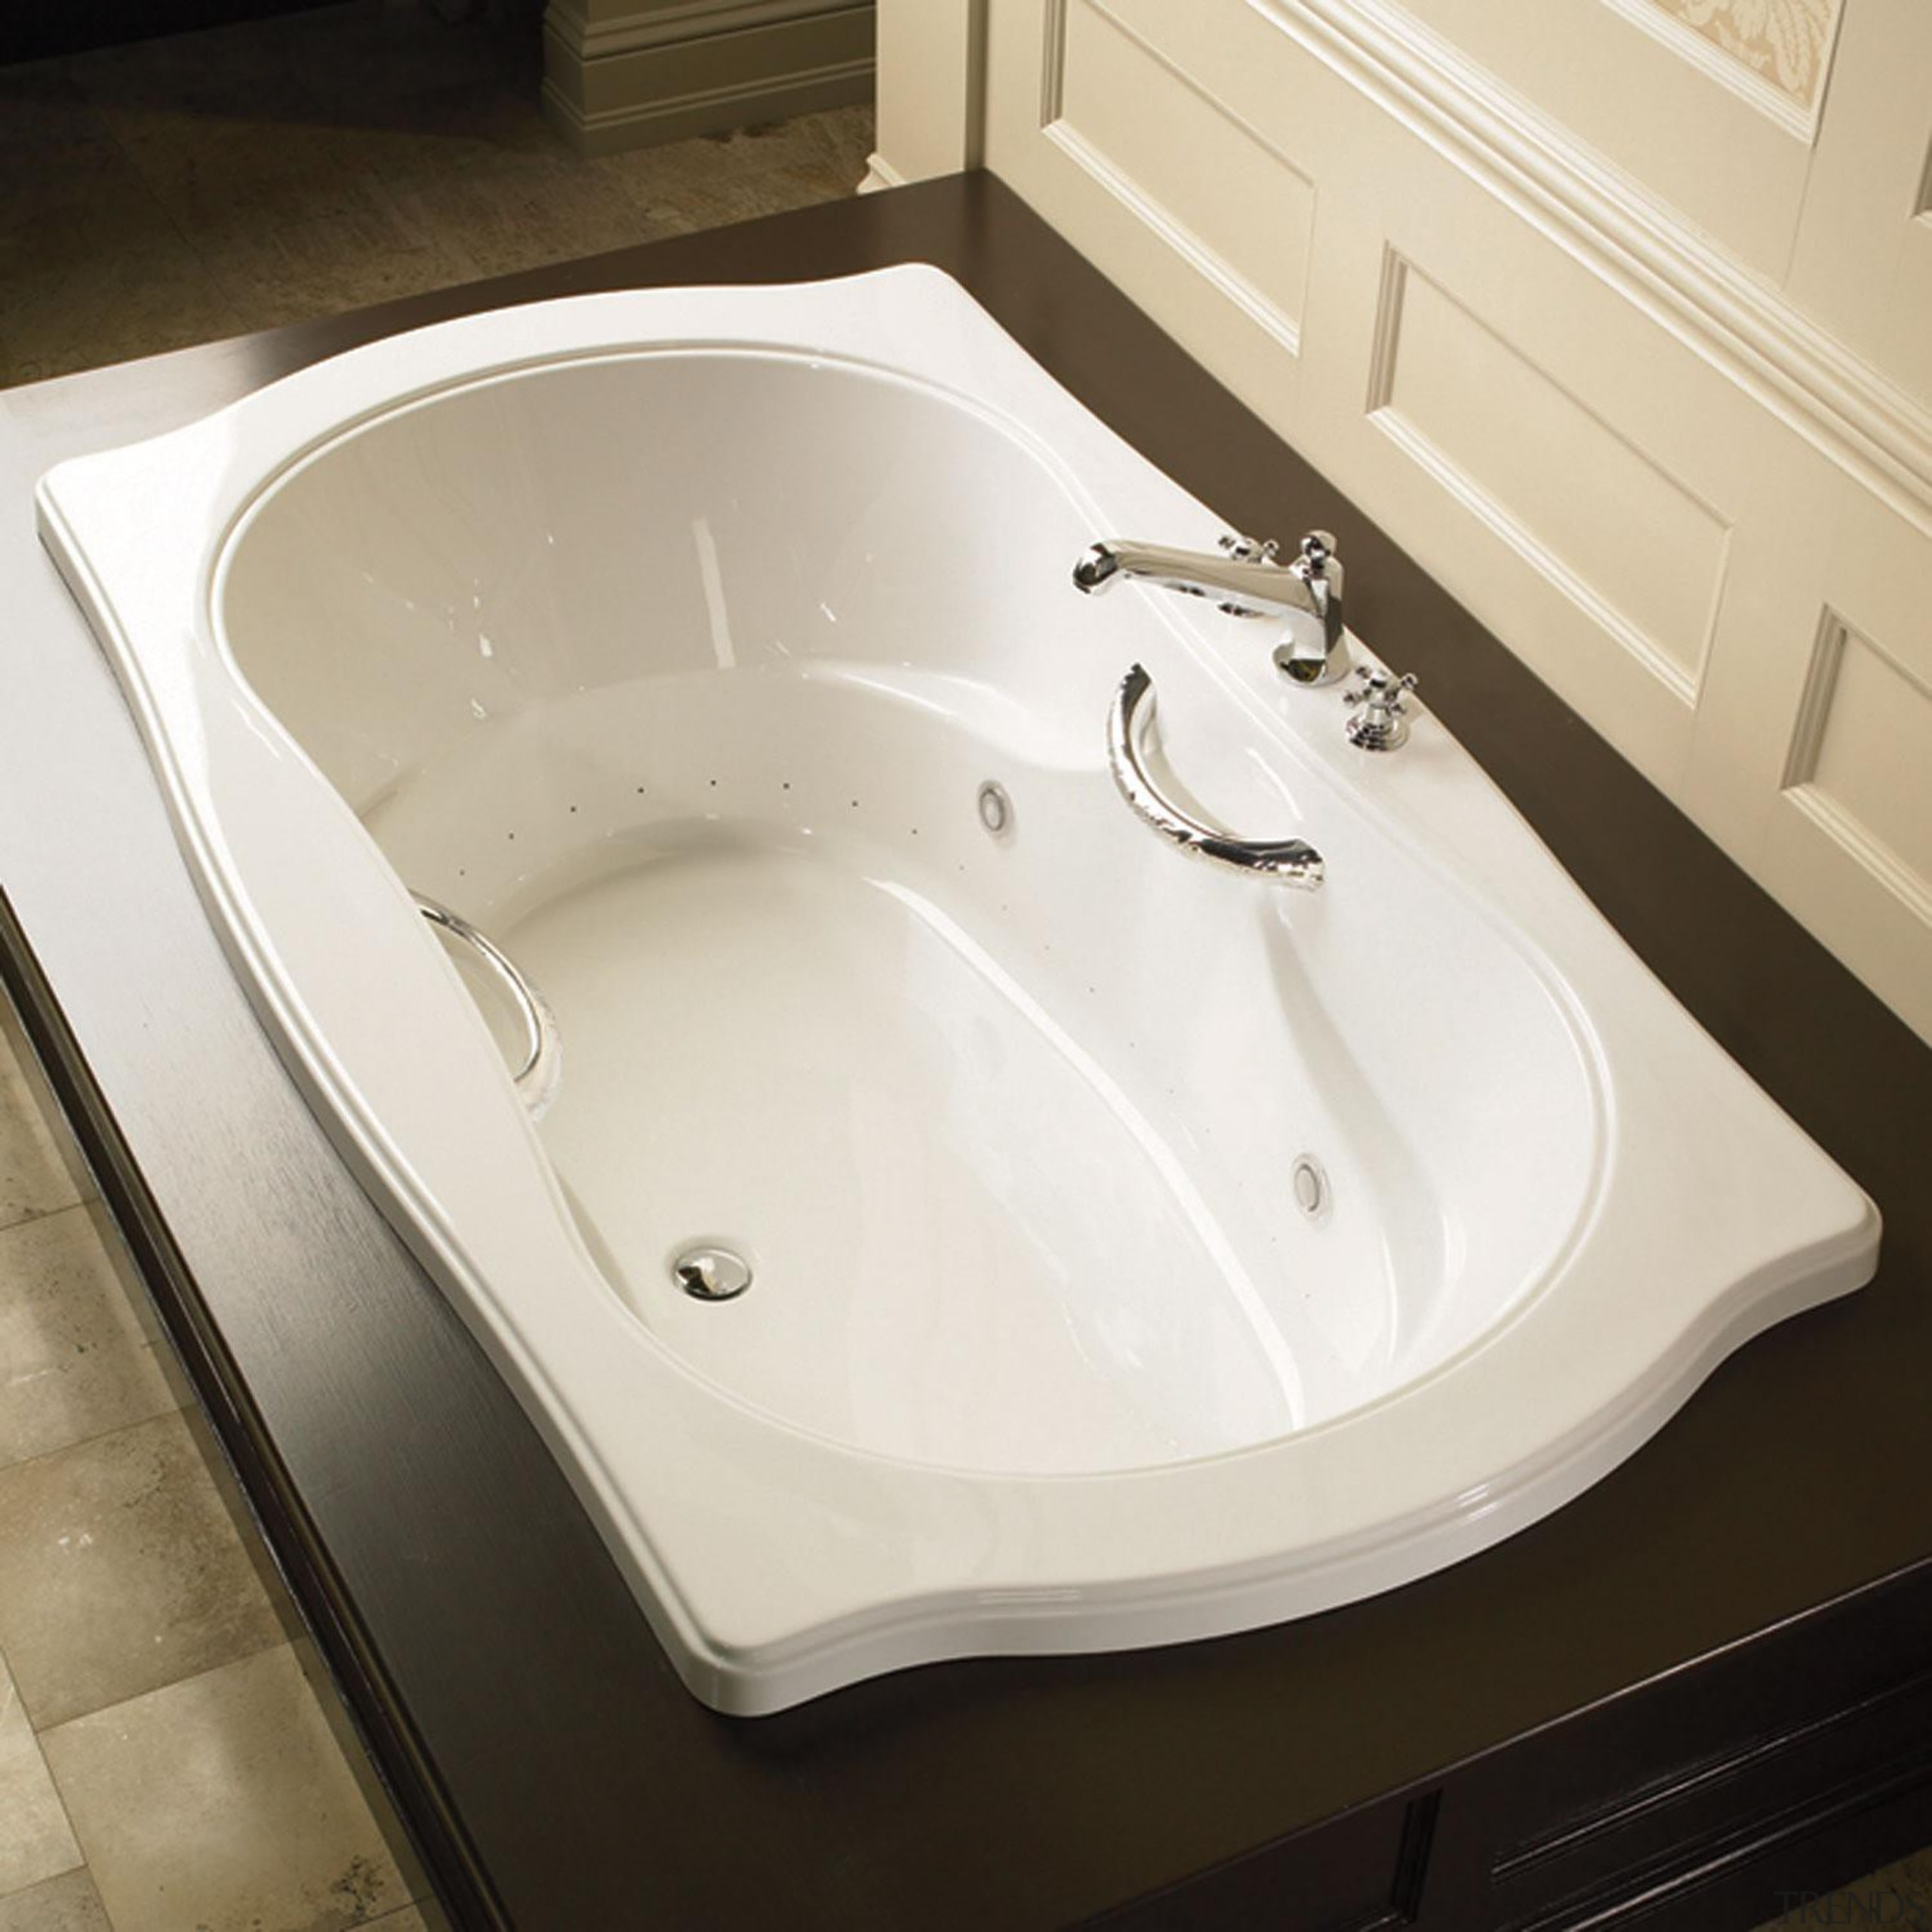 This Elegancia contour is reminiscent of the Victorian angle, bathroom, bathroom sink, bathtub, ceramic, floor, plumbing fixture, product design, sink, tap, toilet seat, white